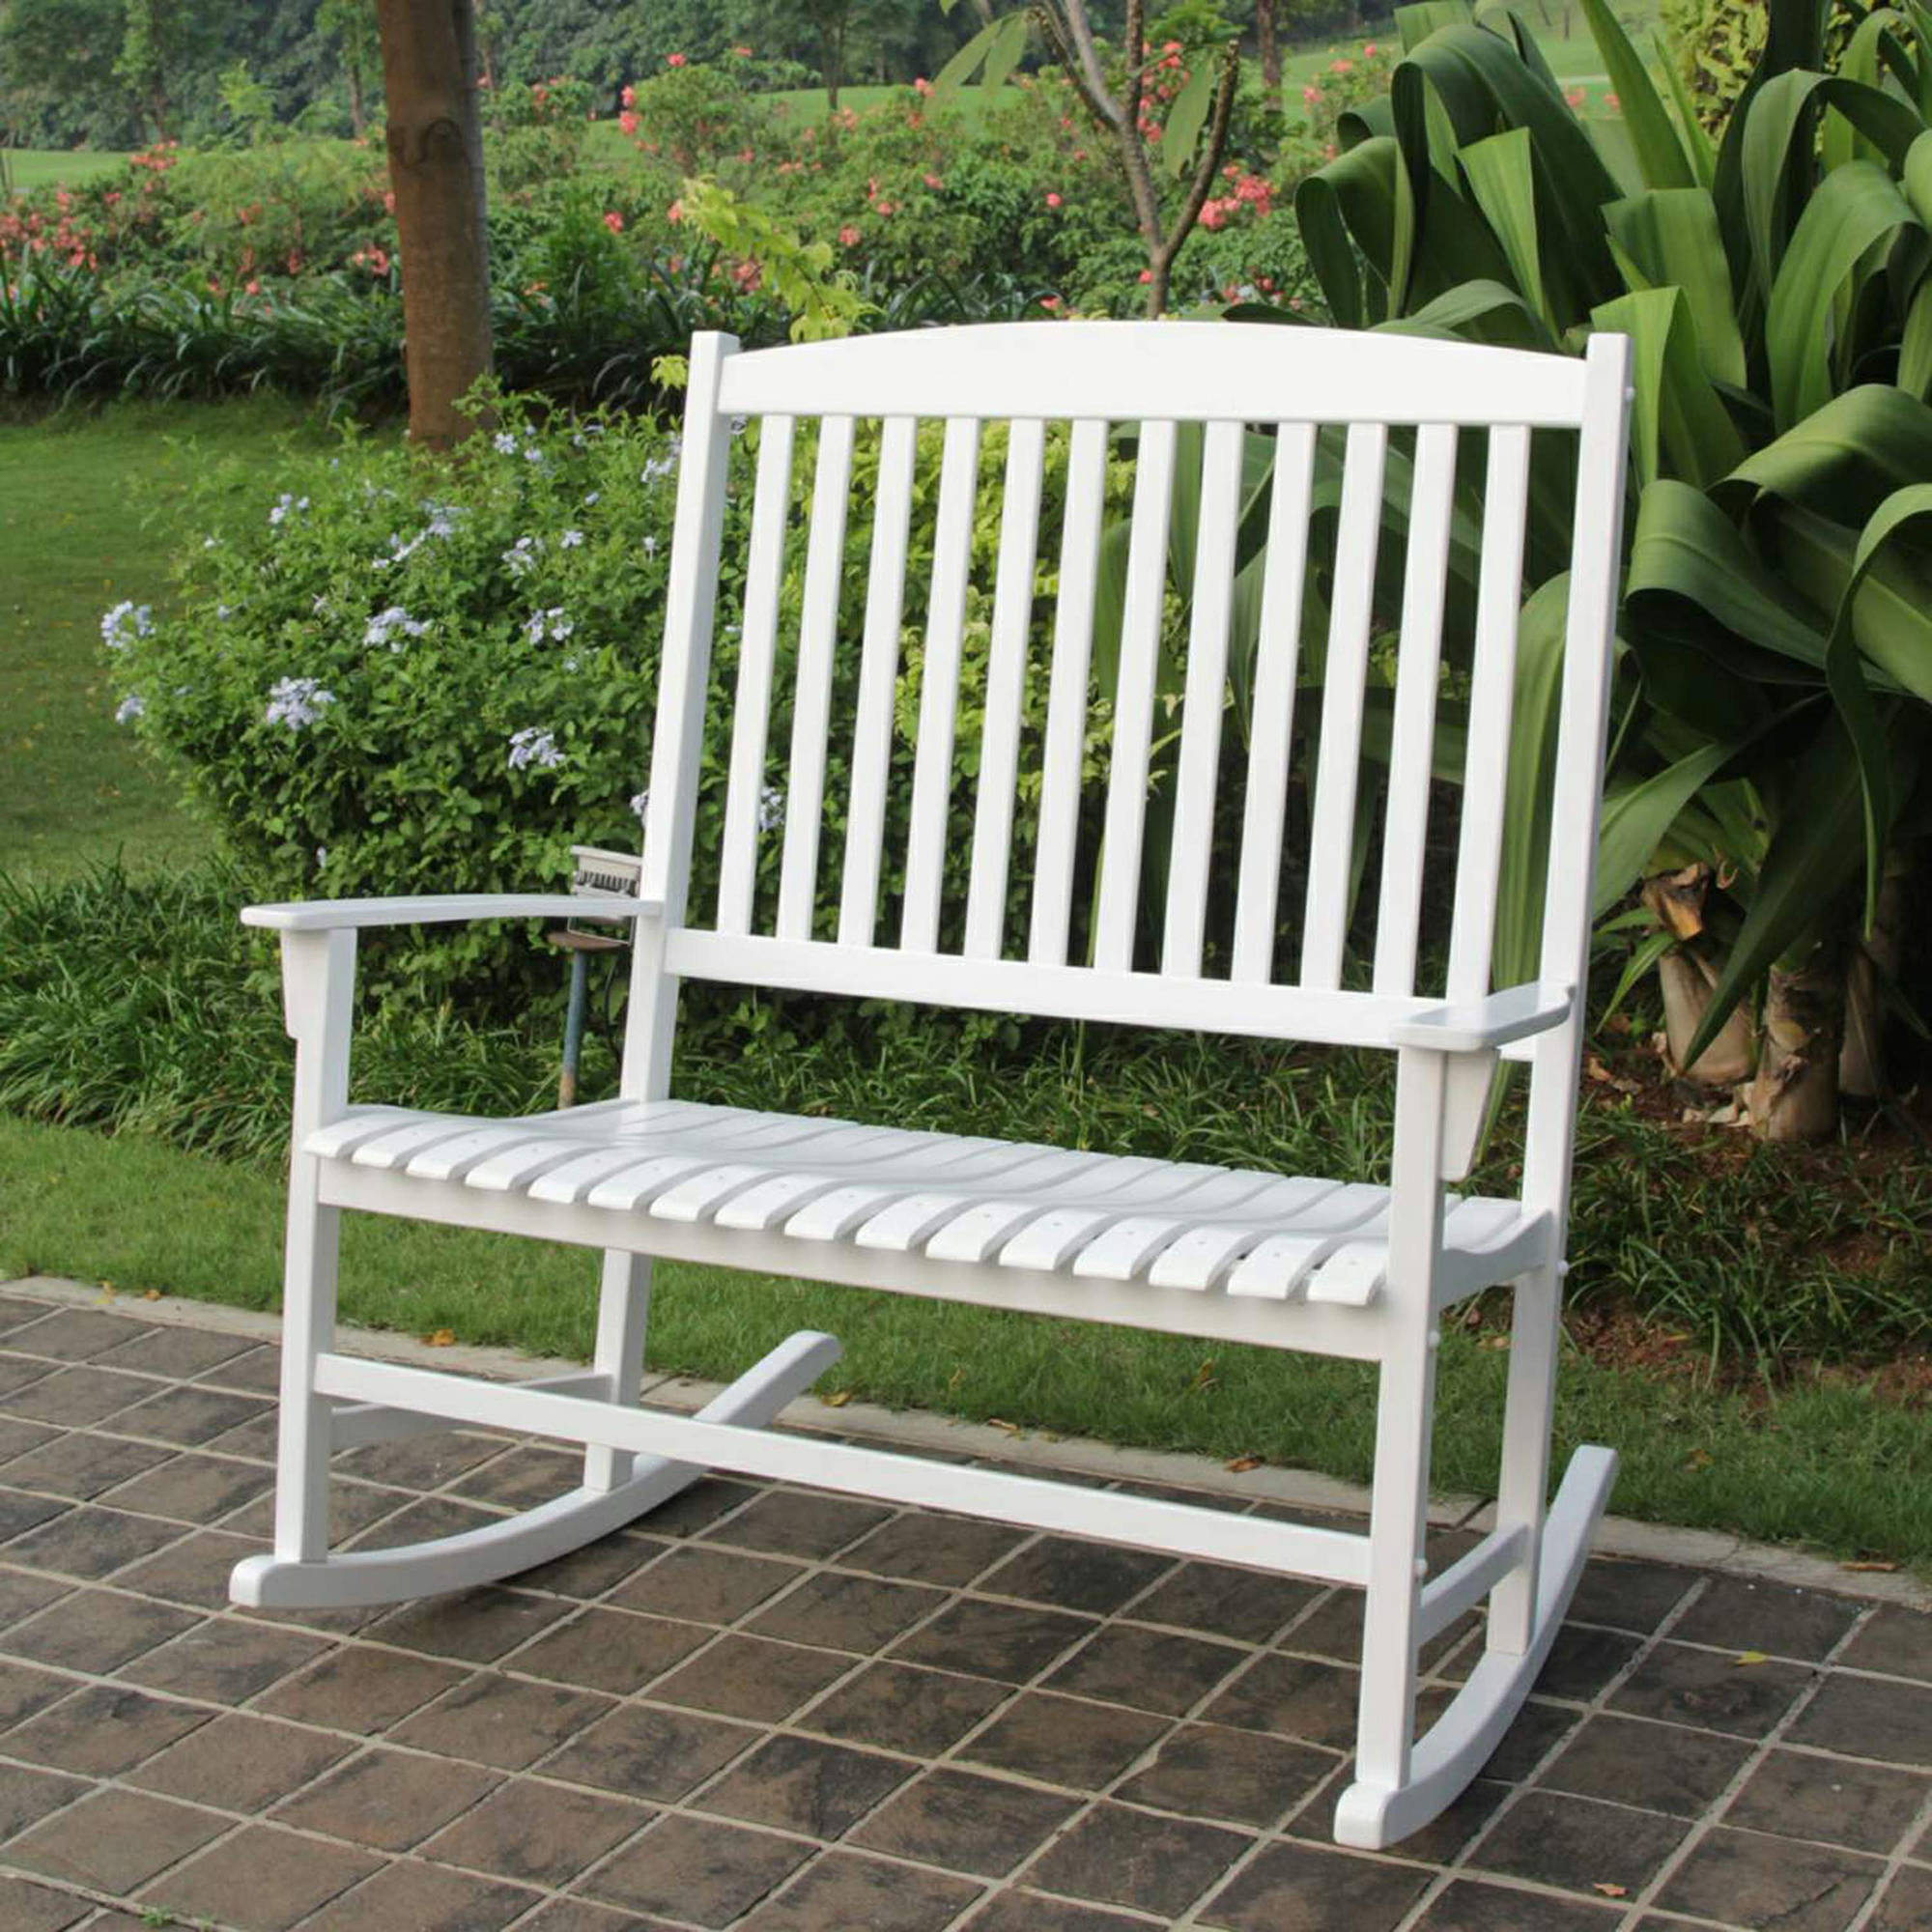 Mainstays Outdoor Double Rocking Chair White Solid Hardwood Wide Seat Seats 2